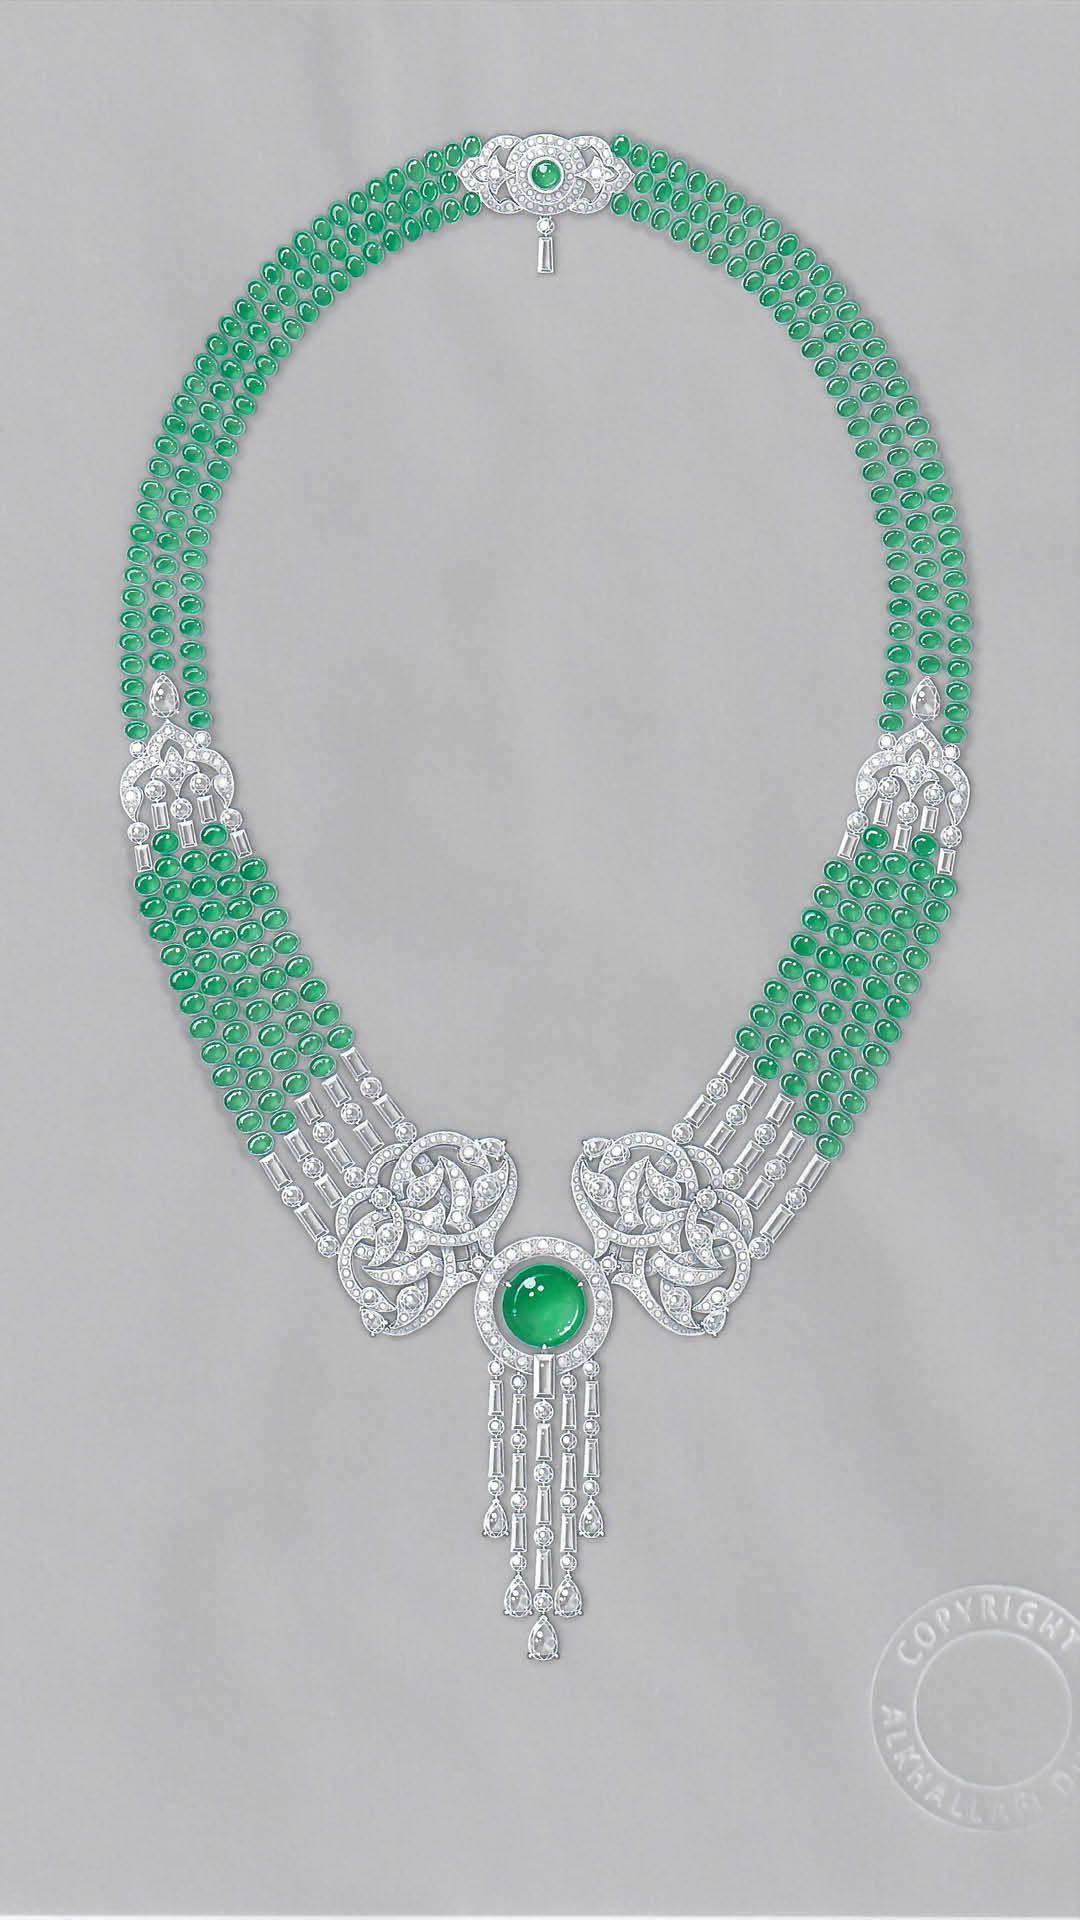 Gouache Emerald Necklace Design by Alkhallafi